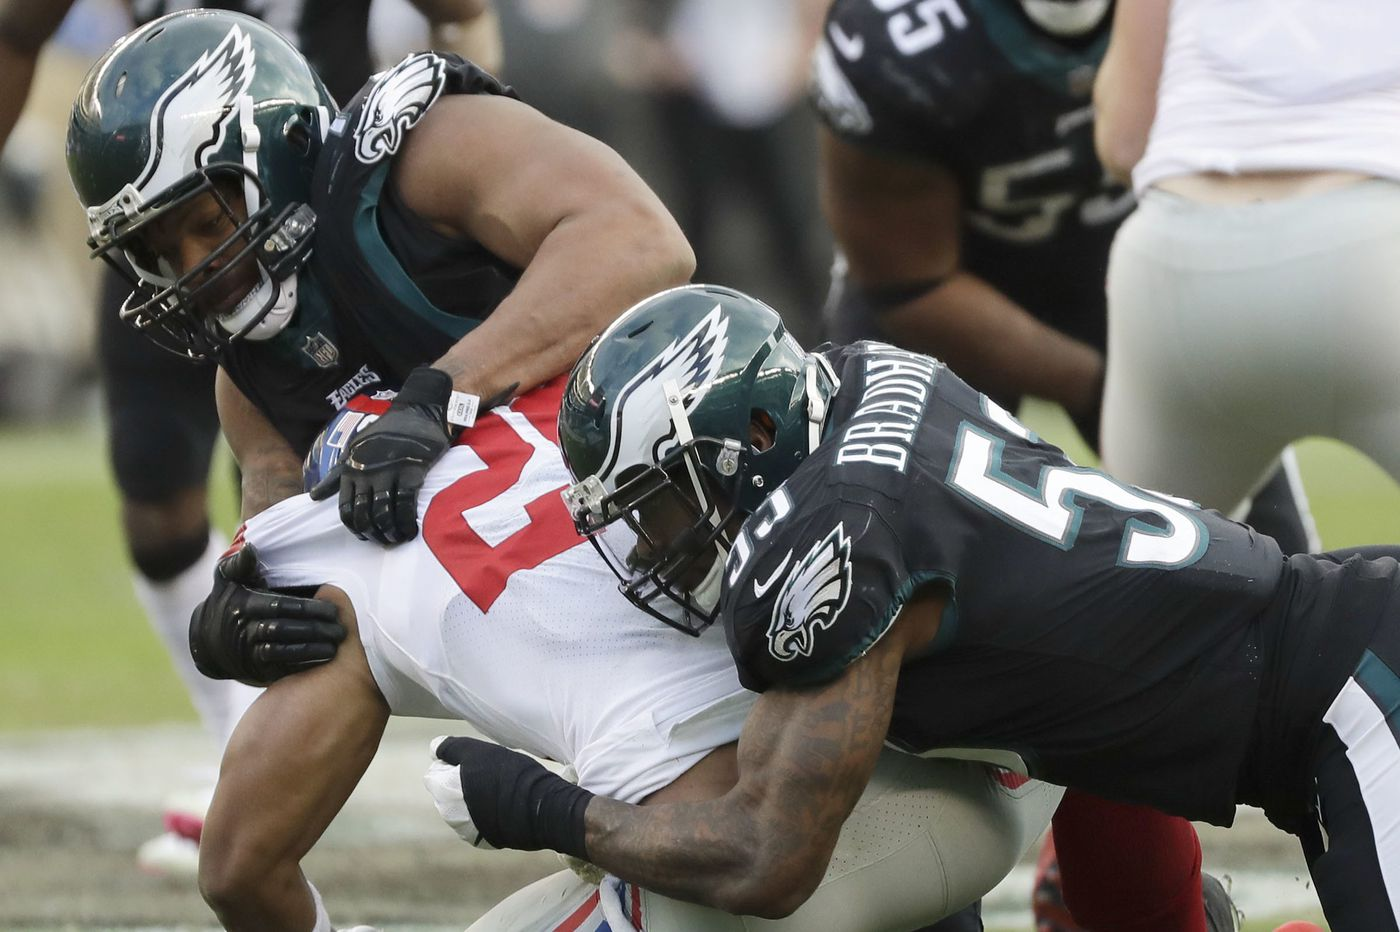 Eagles' Nigel Bradham has a broken thumb but intends to play against Washington